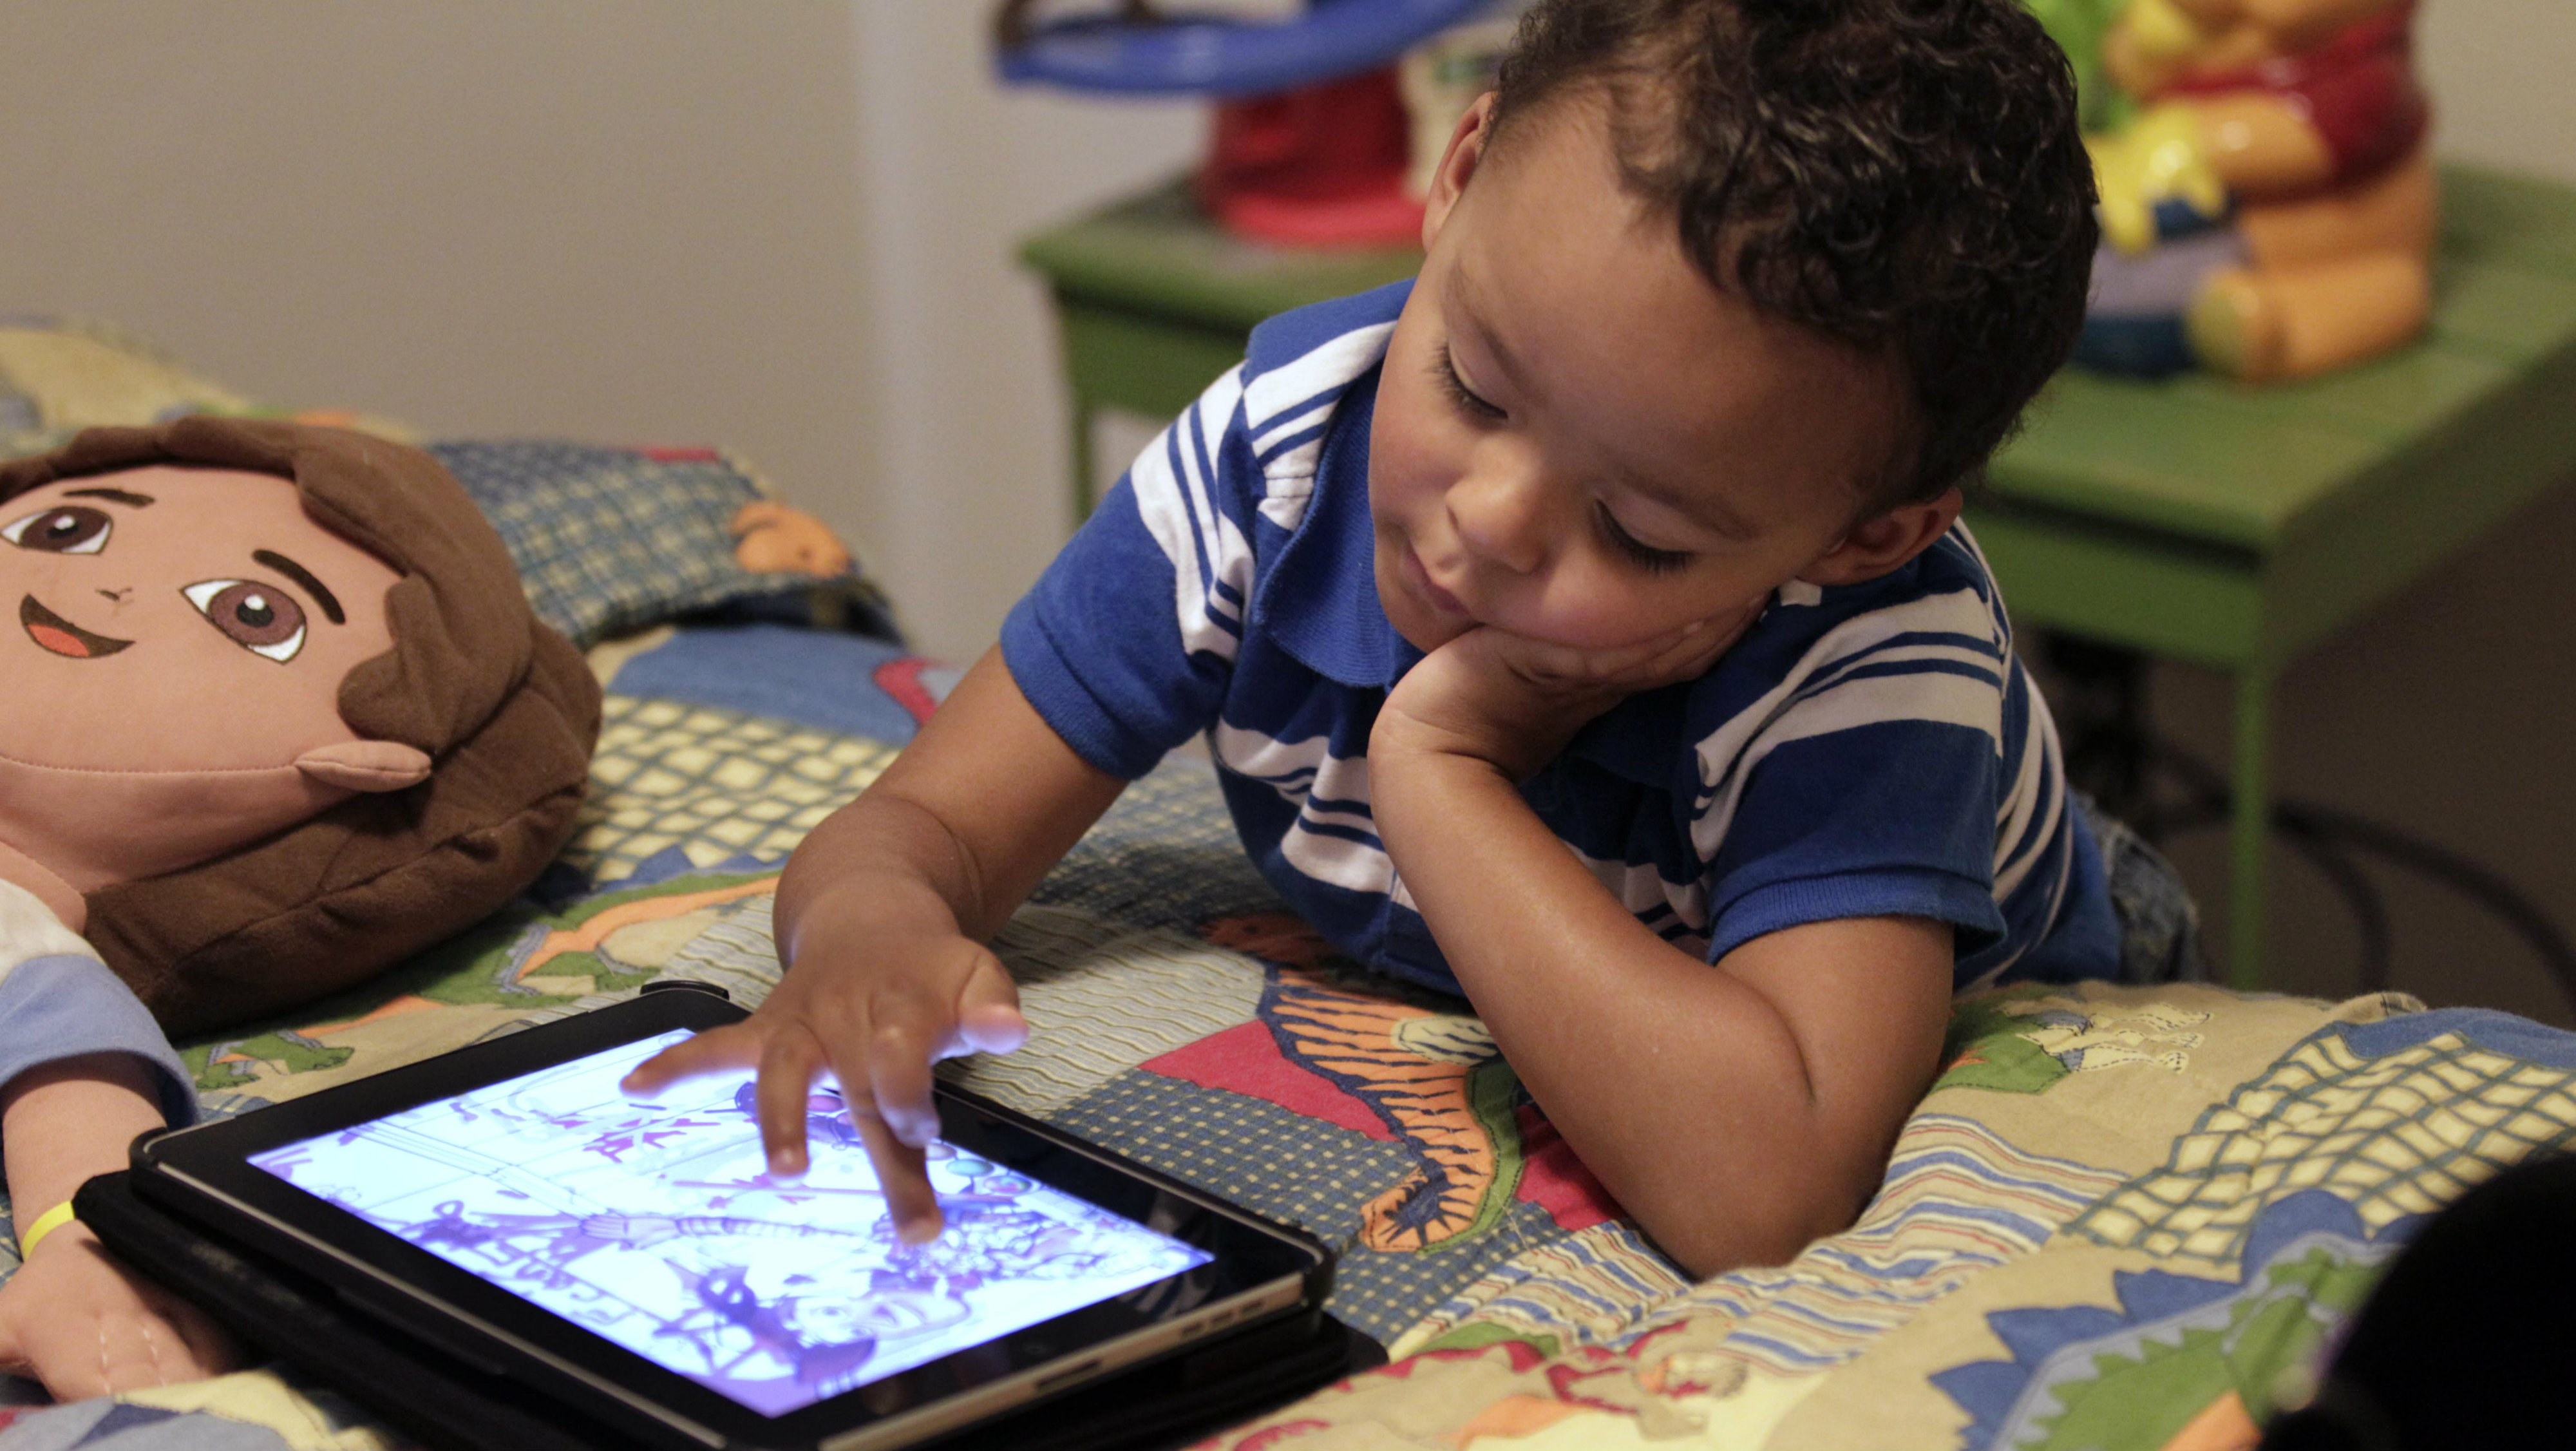 child-playing-with-an-ipad